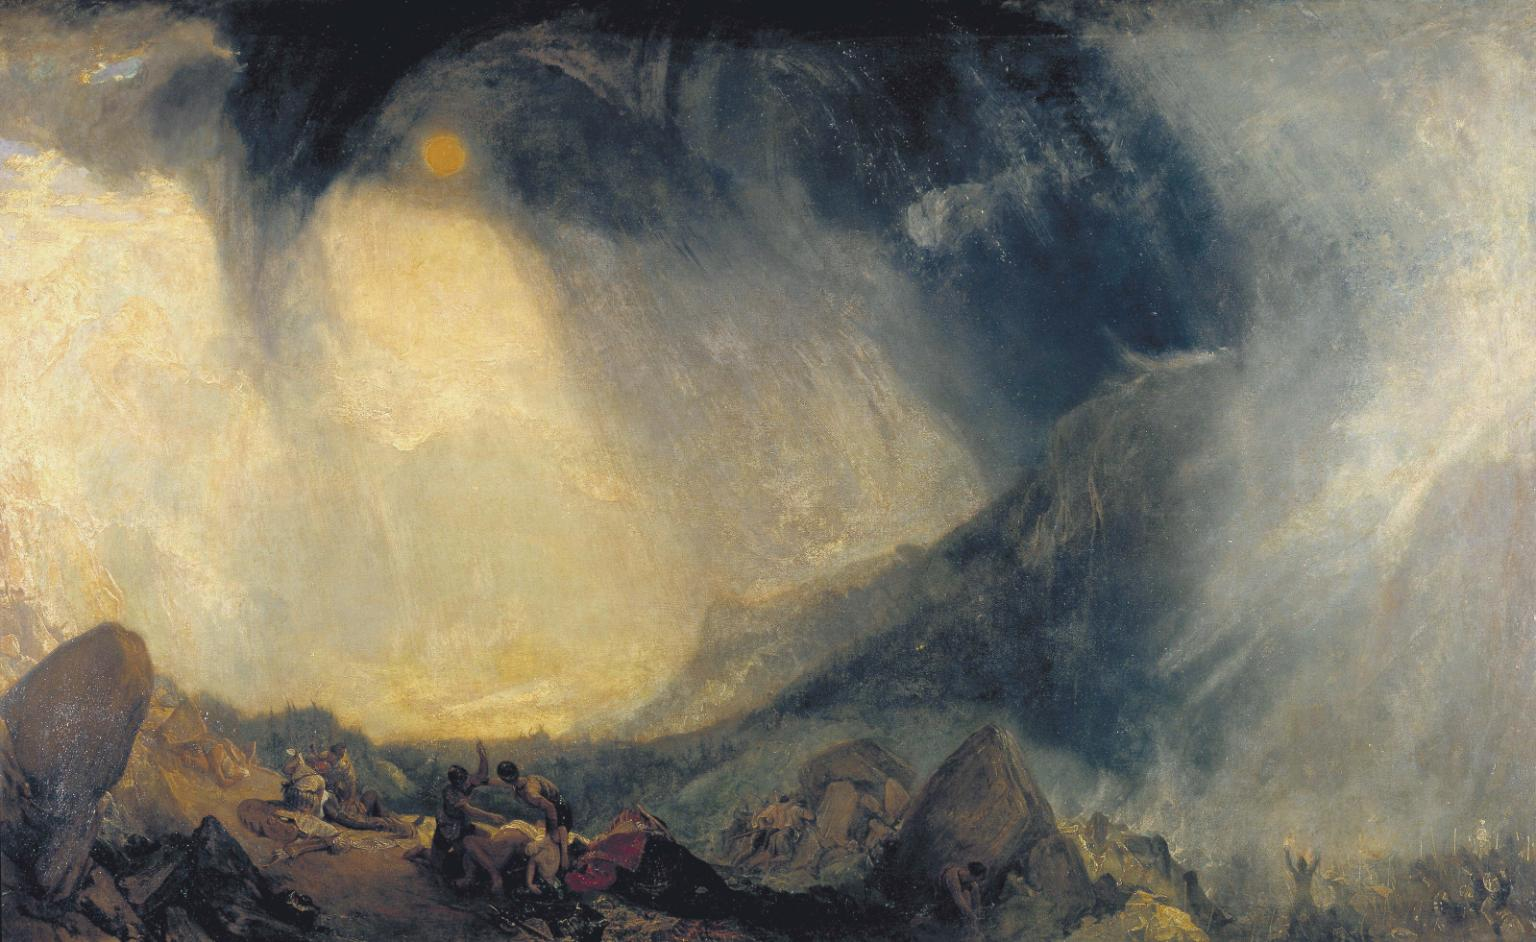 J.M.W. Turner, Hannibal Crossing the Alps, 1812